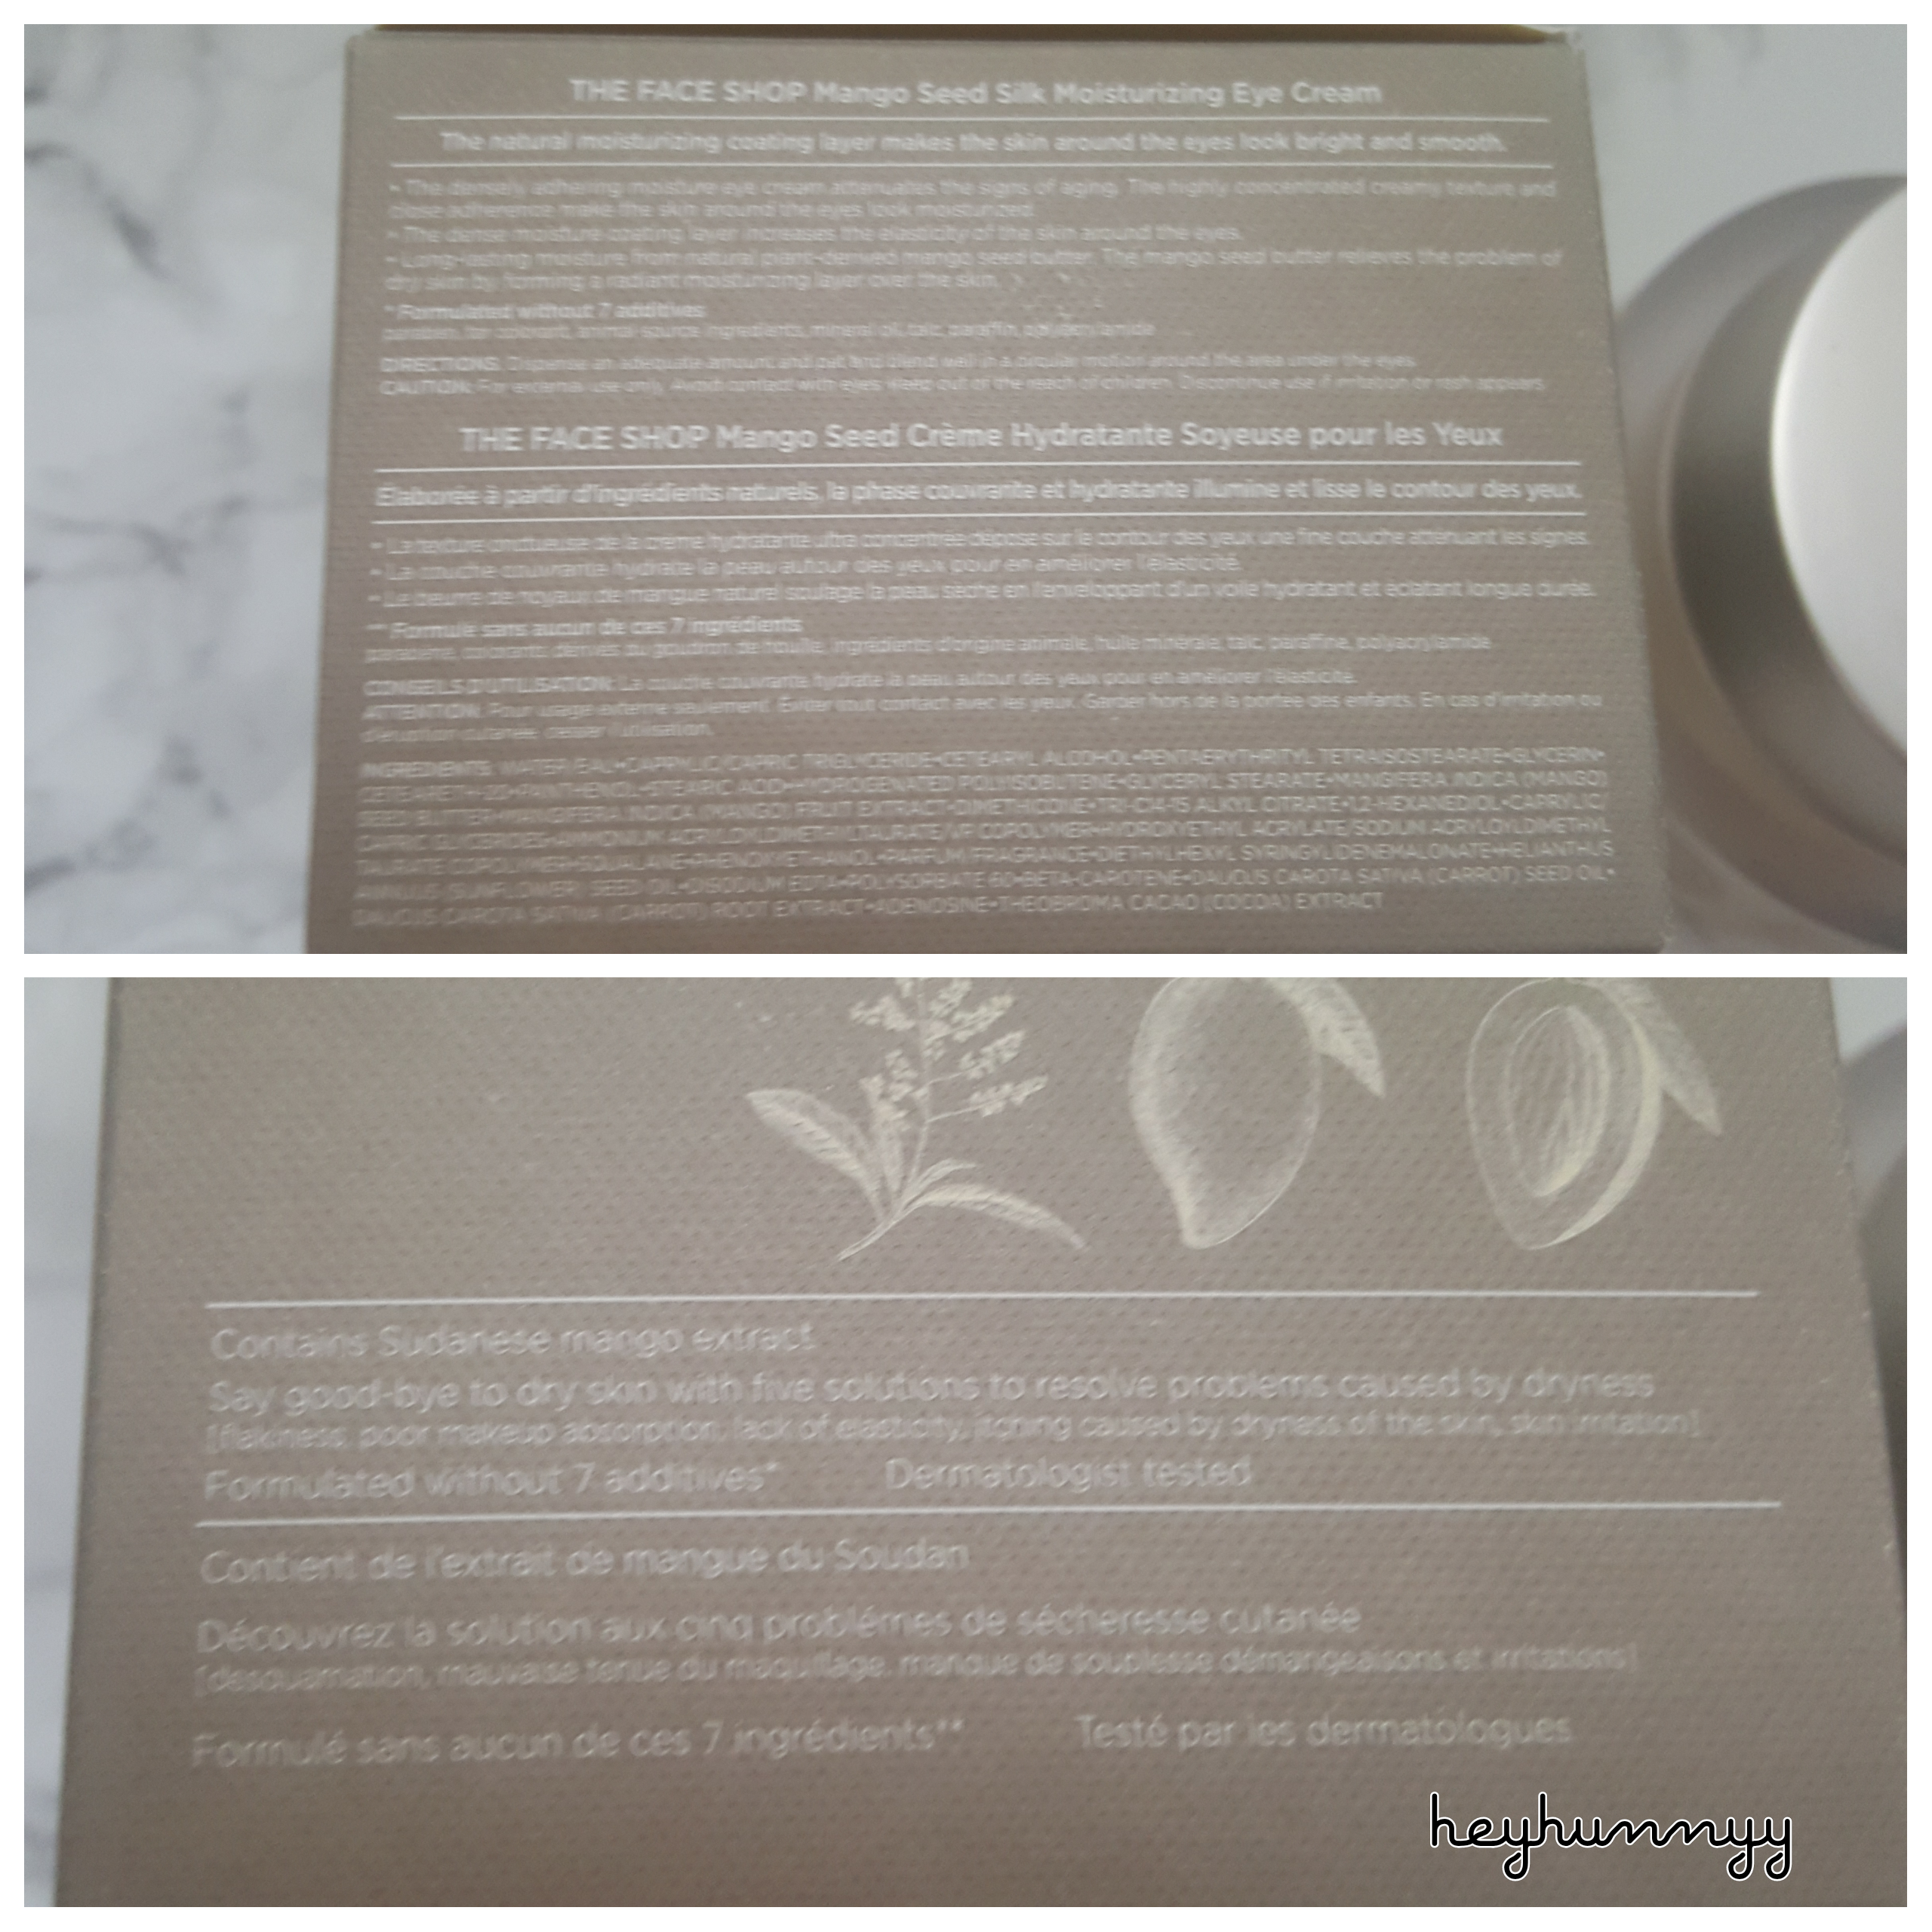 Review The Face Shop Mango Seed Eye Cream Read At Hunnyy Com Thefaceshop Kbeauty Butter Mang The Face Shop Top Beauty Products Moisturizing Eye Cream